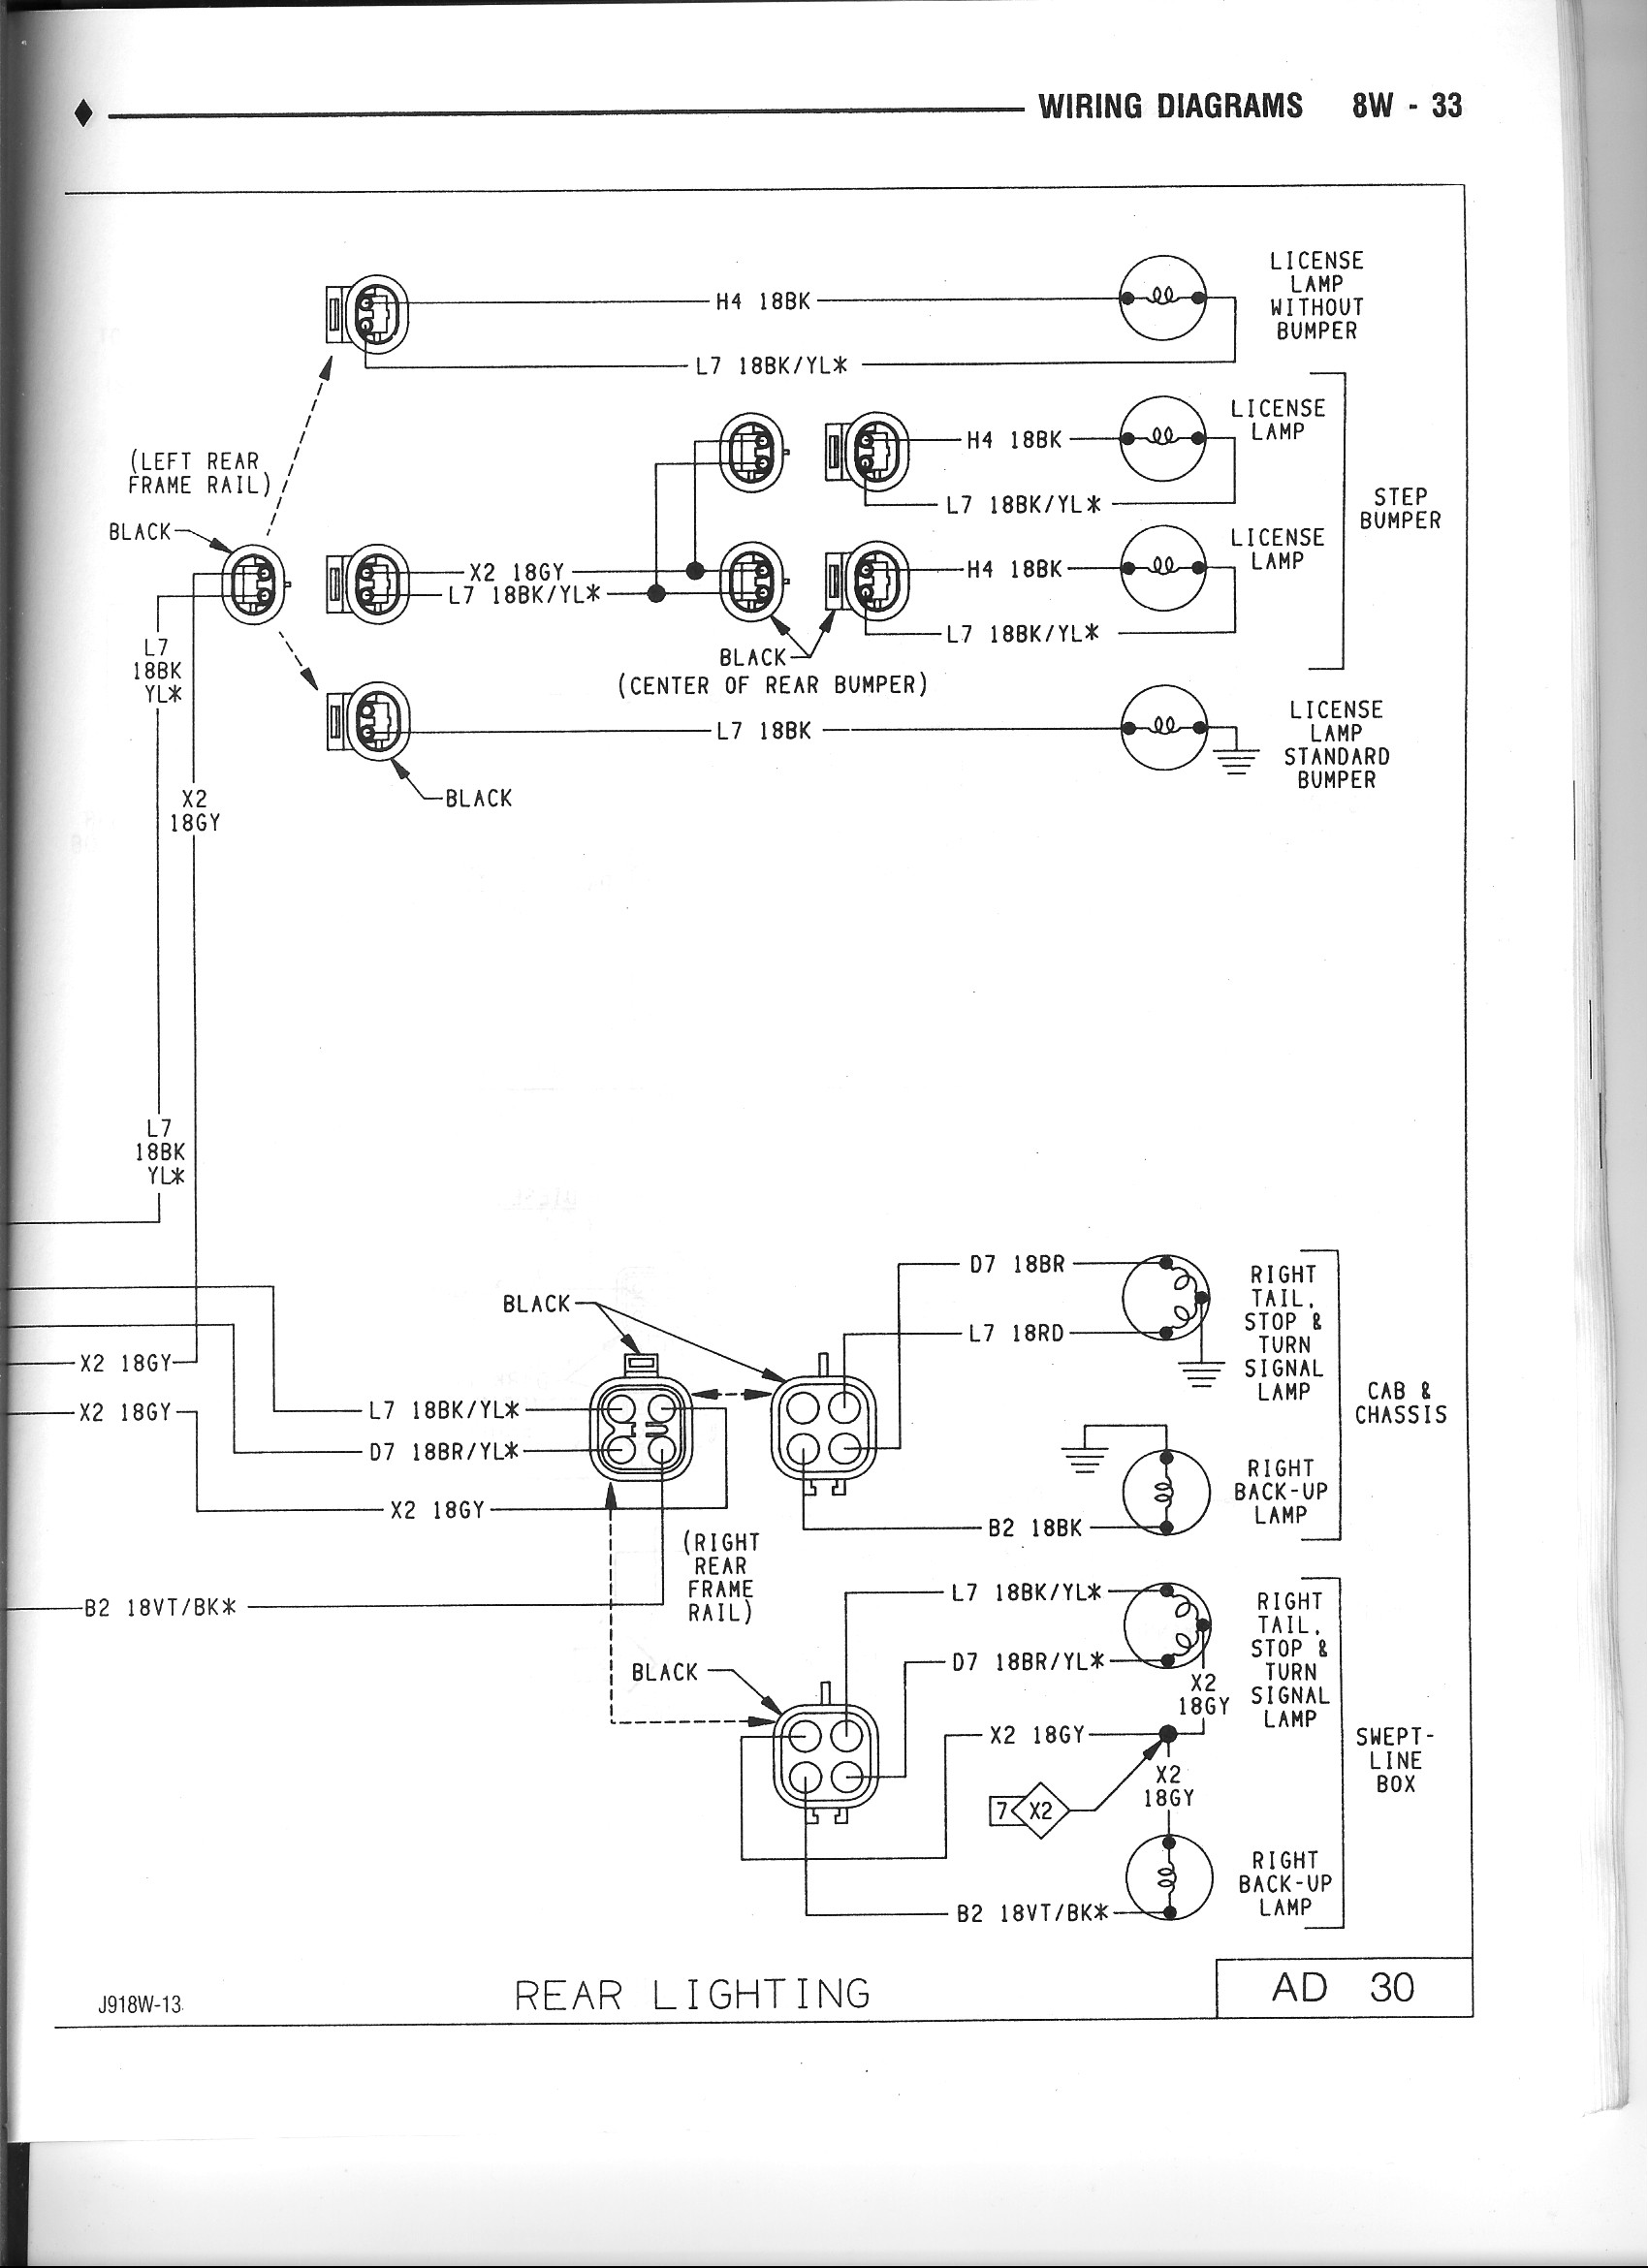 1992 Dodge D350 Wiring Diagram Data 2002 Dakota 92 Truck Radio Library 1990